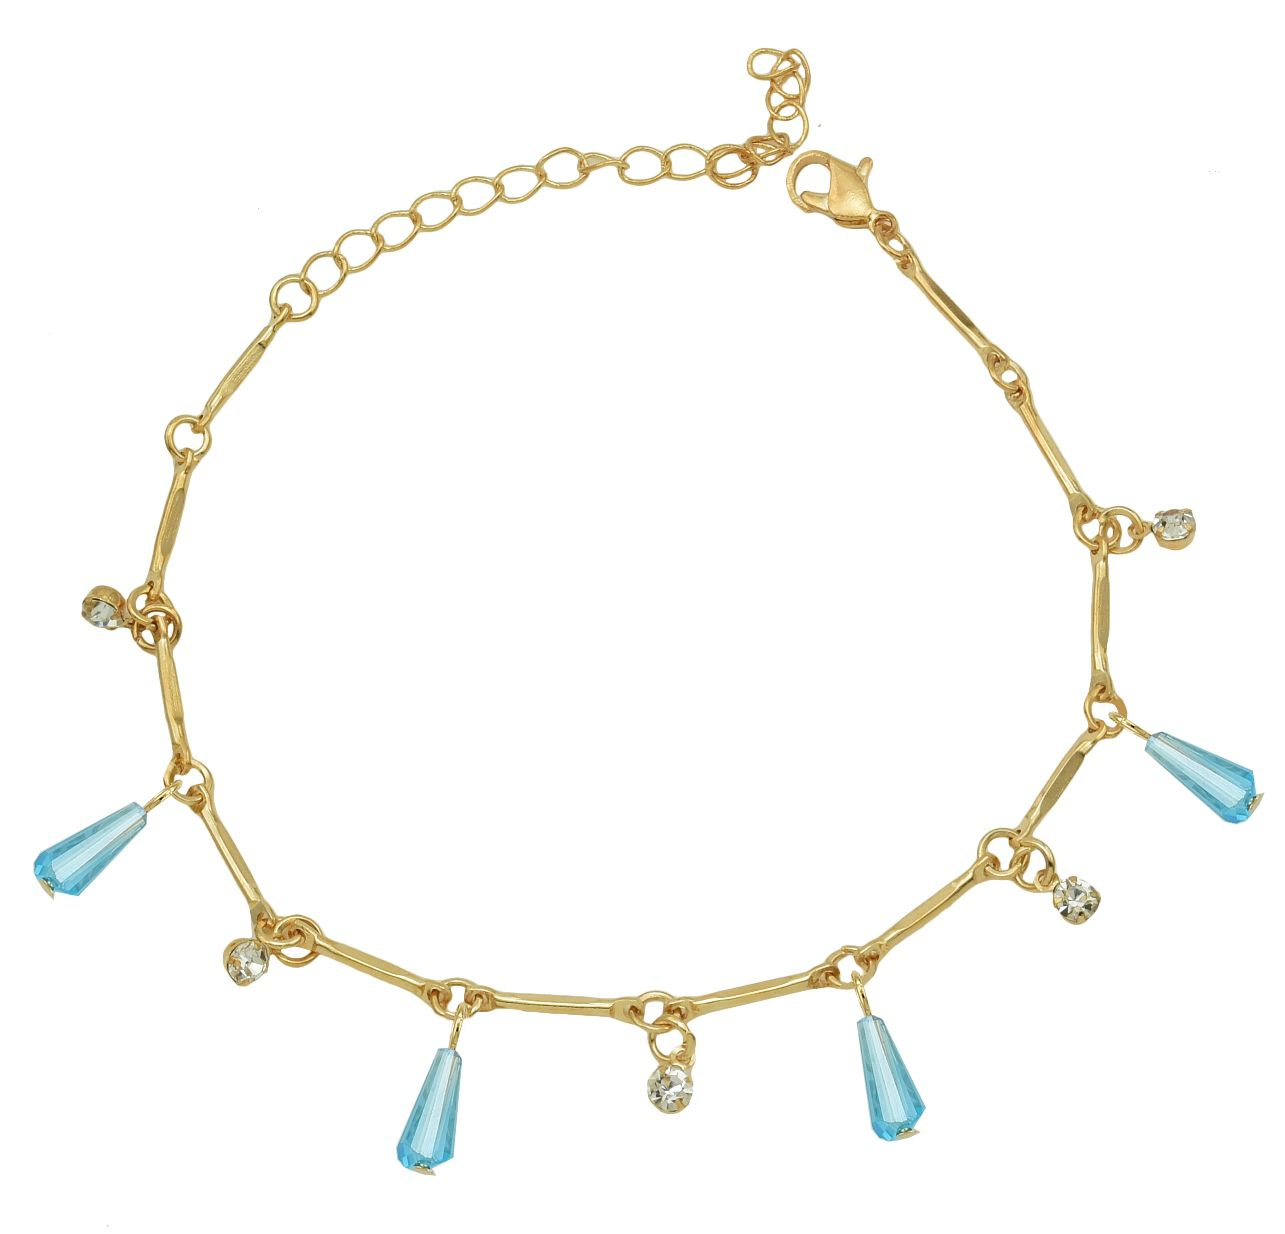 High Trendz Trendy Light Weight Gold Plated Anklet With Hanging Blue Crystal For Women And Girls